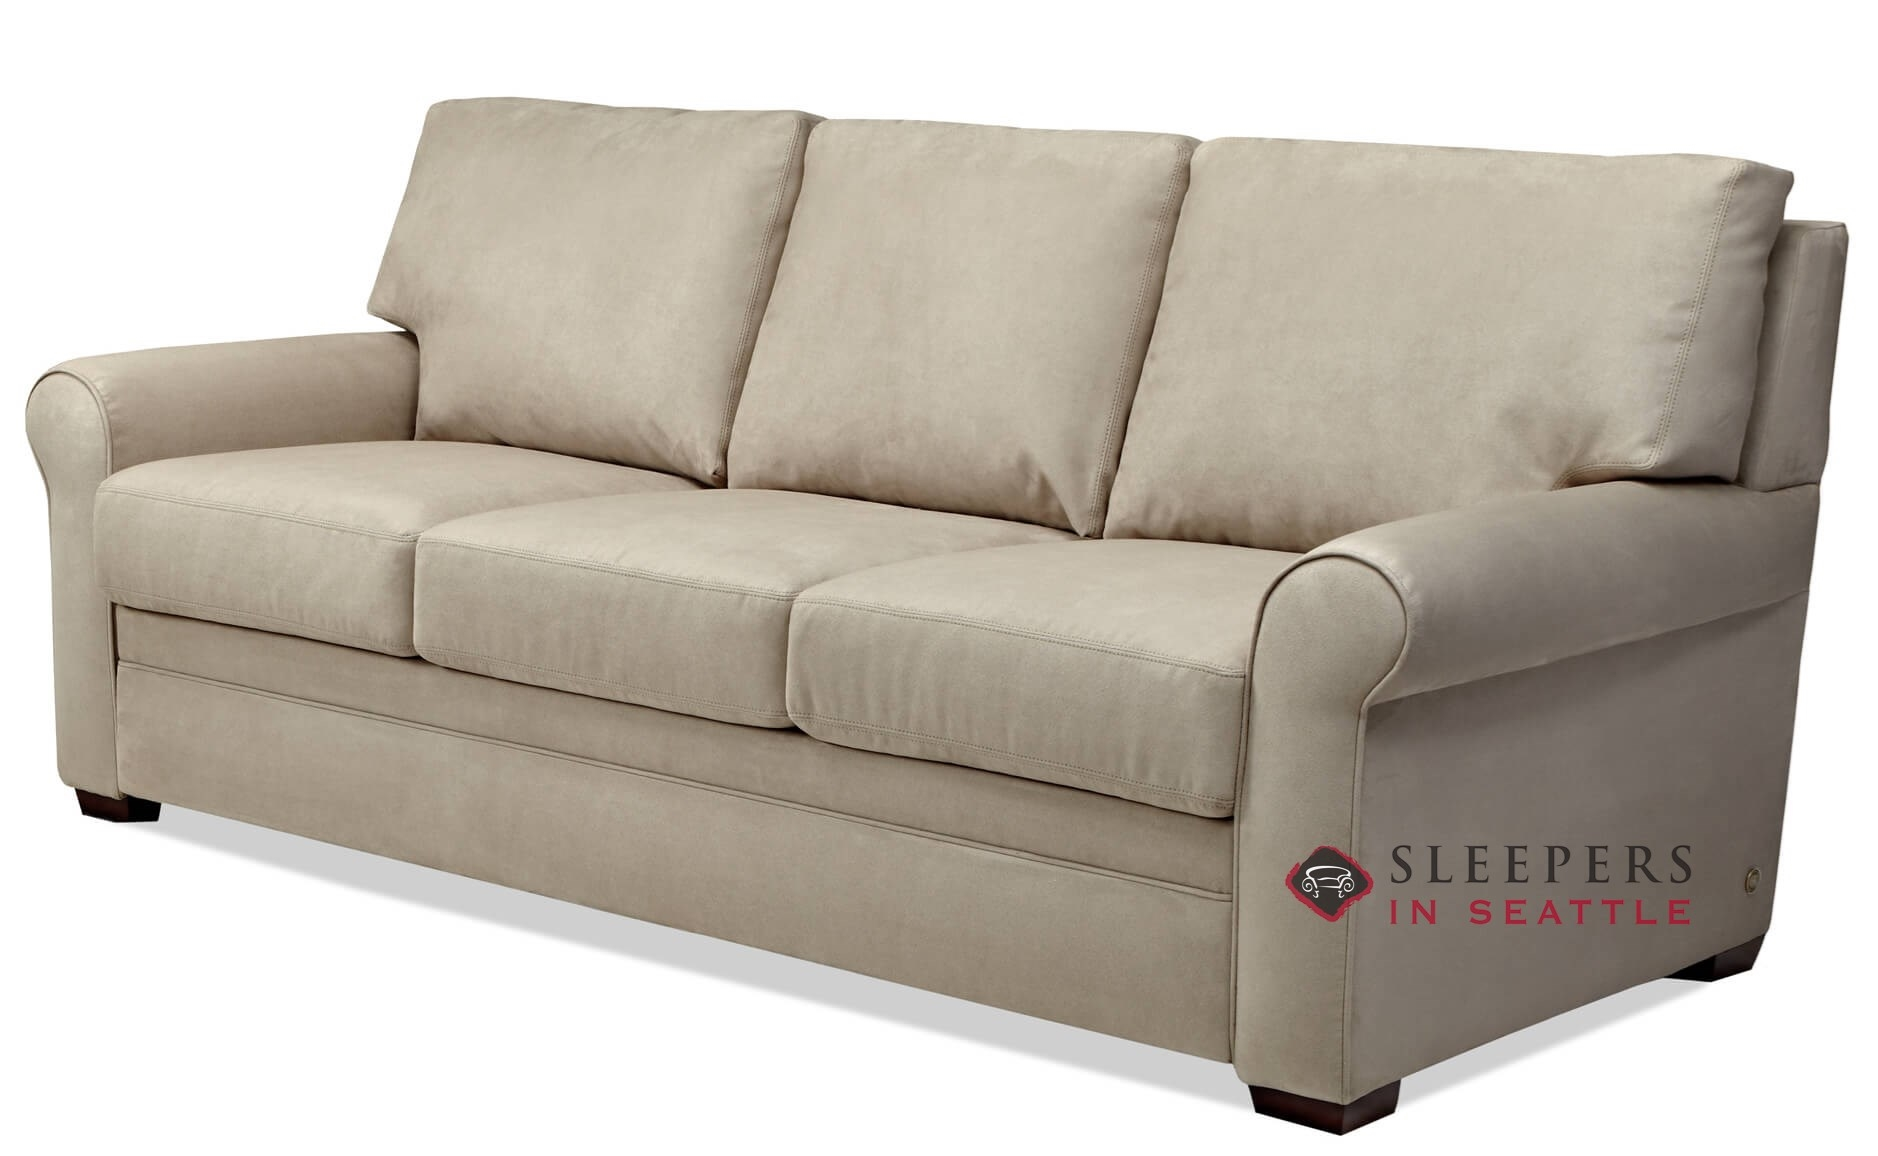 american leather gaines sectional comfort sleeper sideview - American Leather Sleeper Sofa